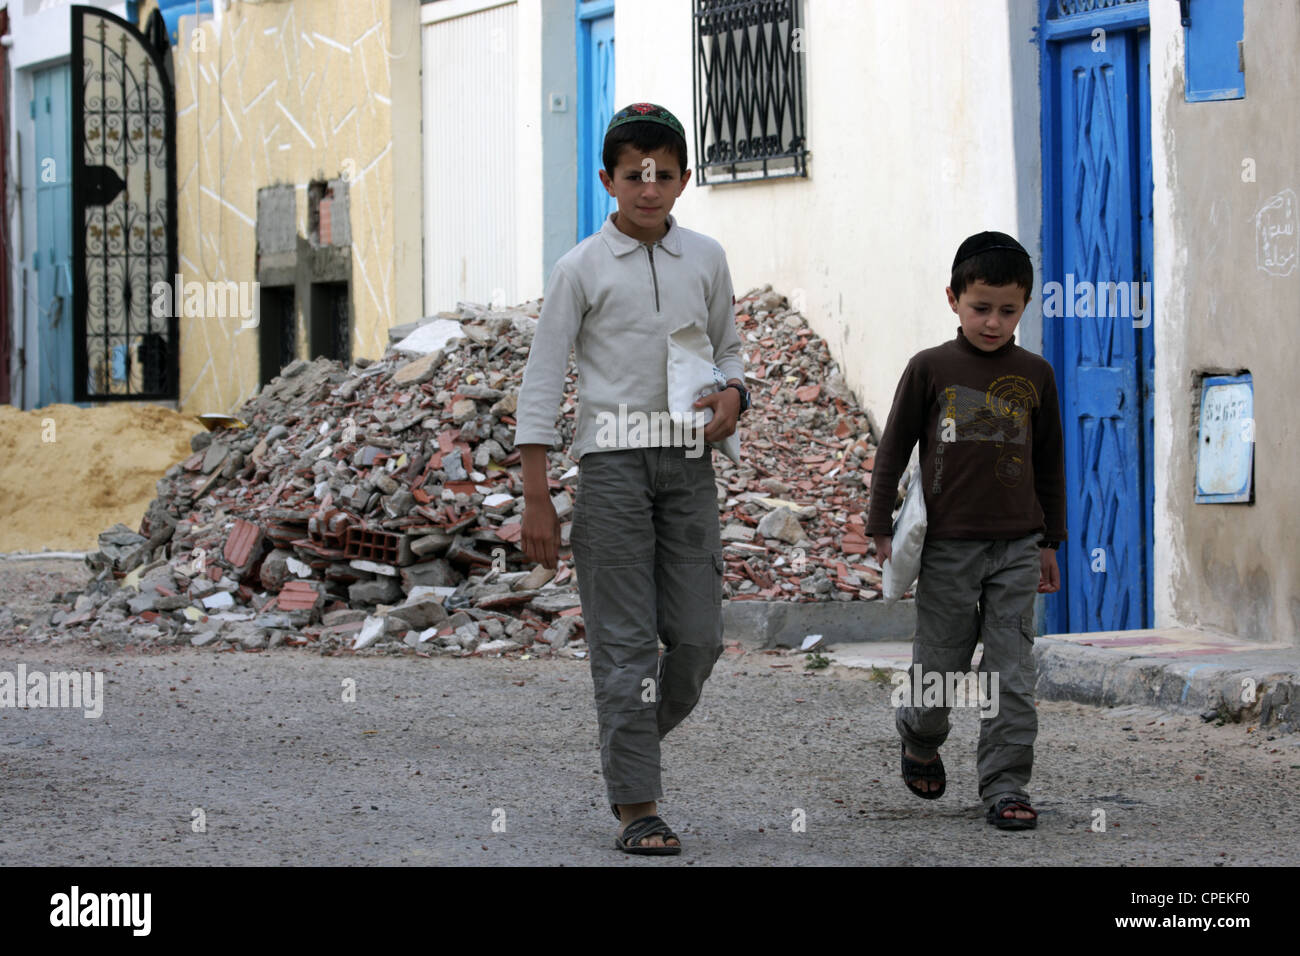 Two young Jewish schoolboys on their way to school on the Tunisian island of Djerba - Stock Image